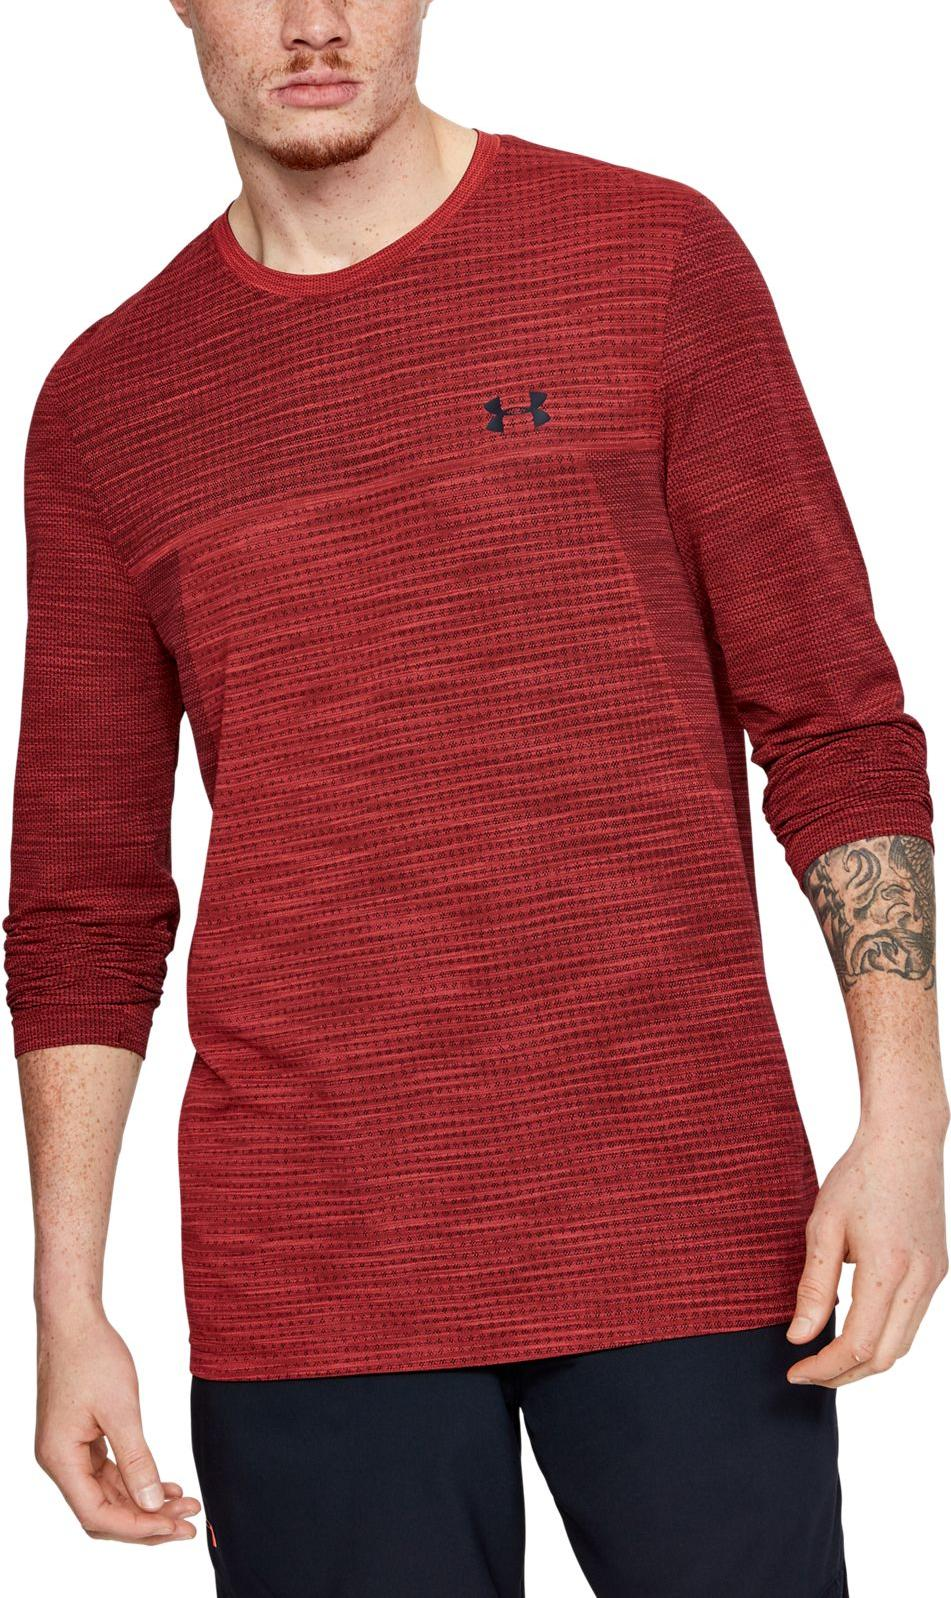 Under Armour Vanish Seamless LS Nov 1 Hosszú ujjú póló